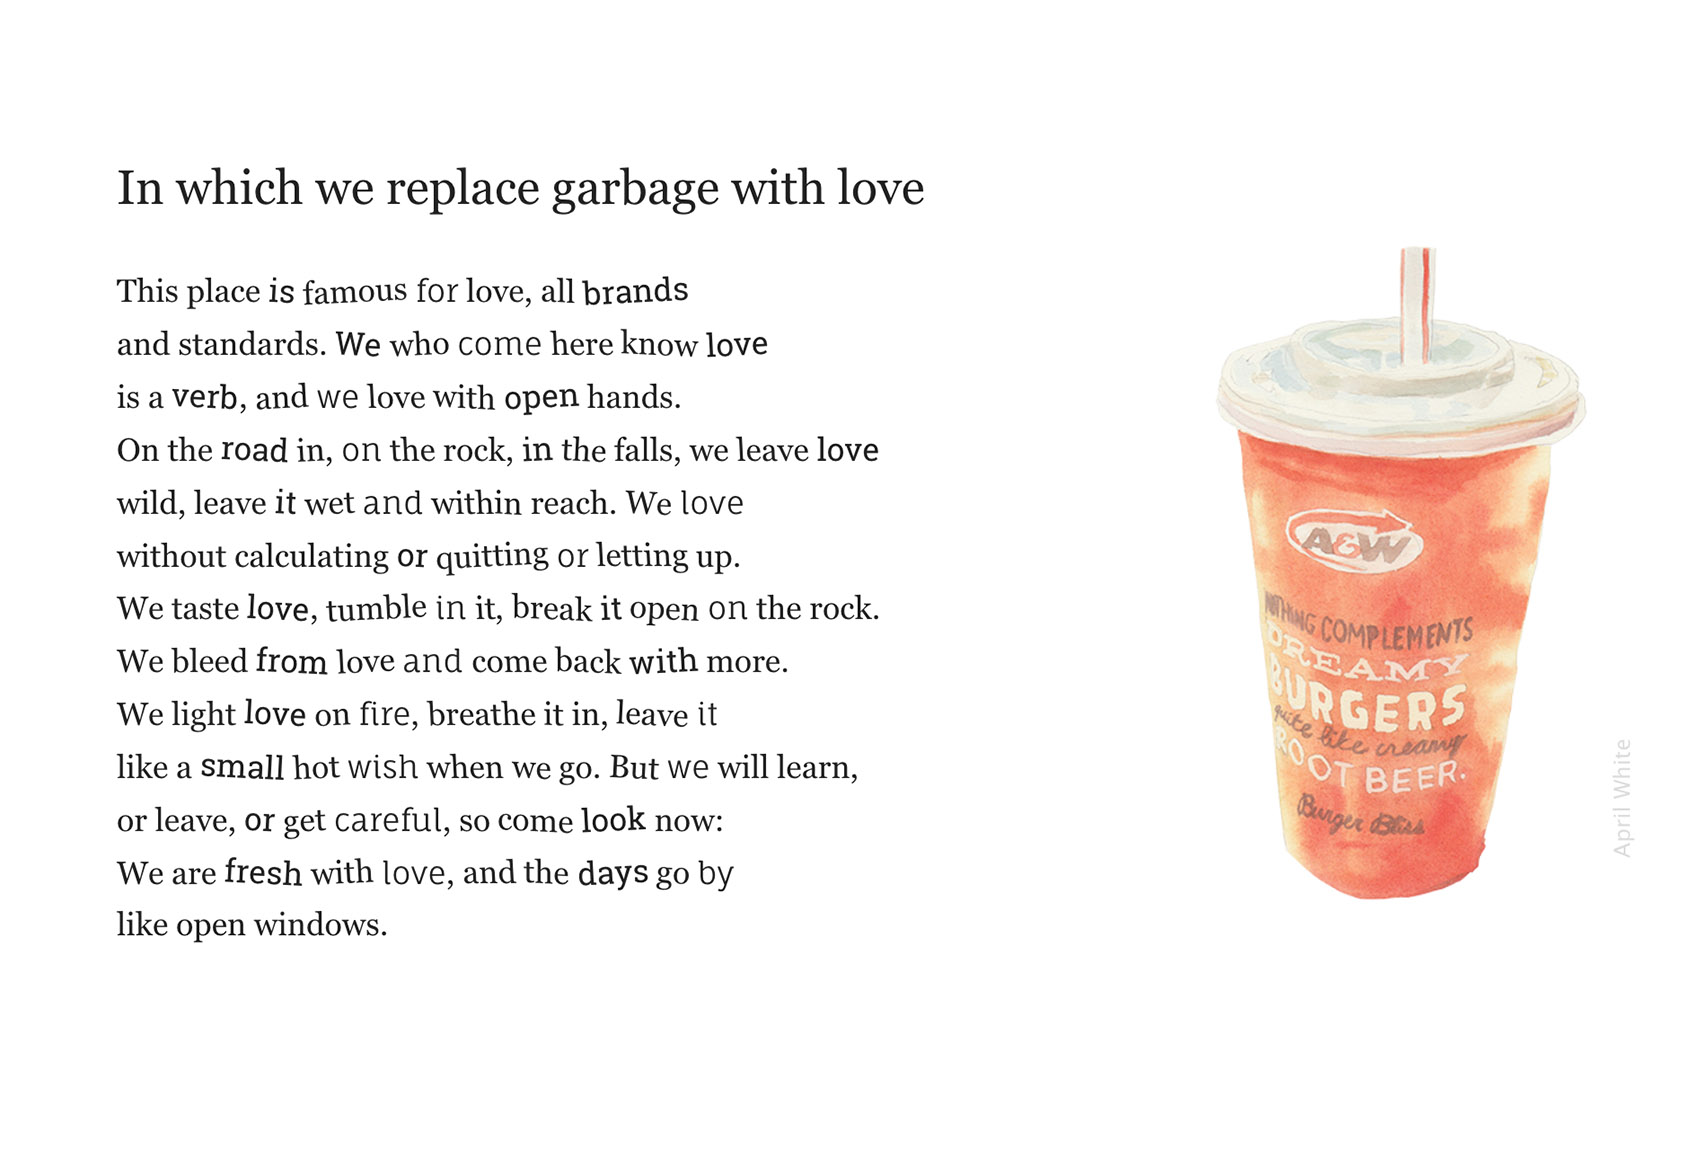 The Garbage Poems